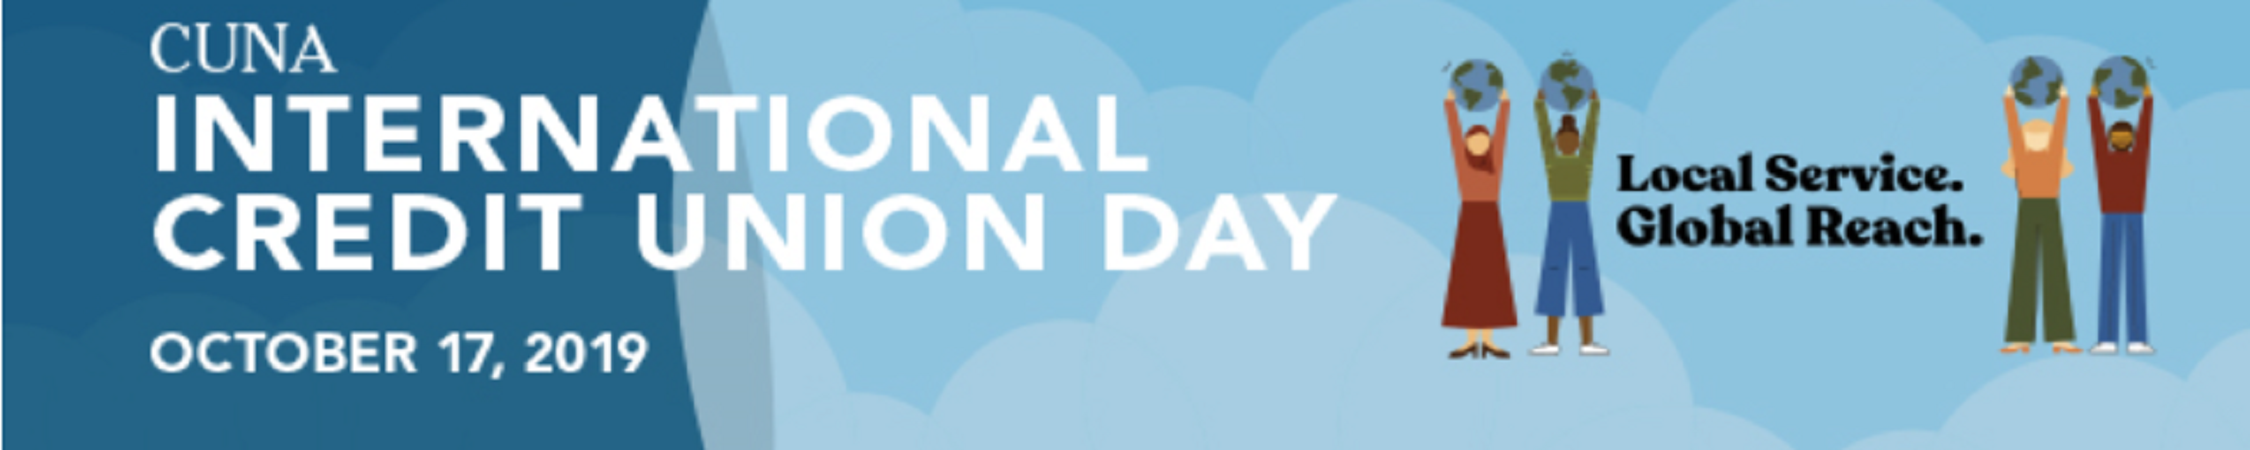 CUNA International Credit Union Day Banner